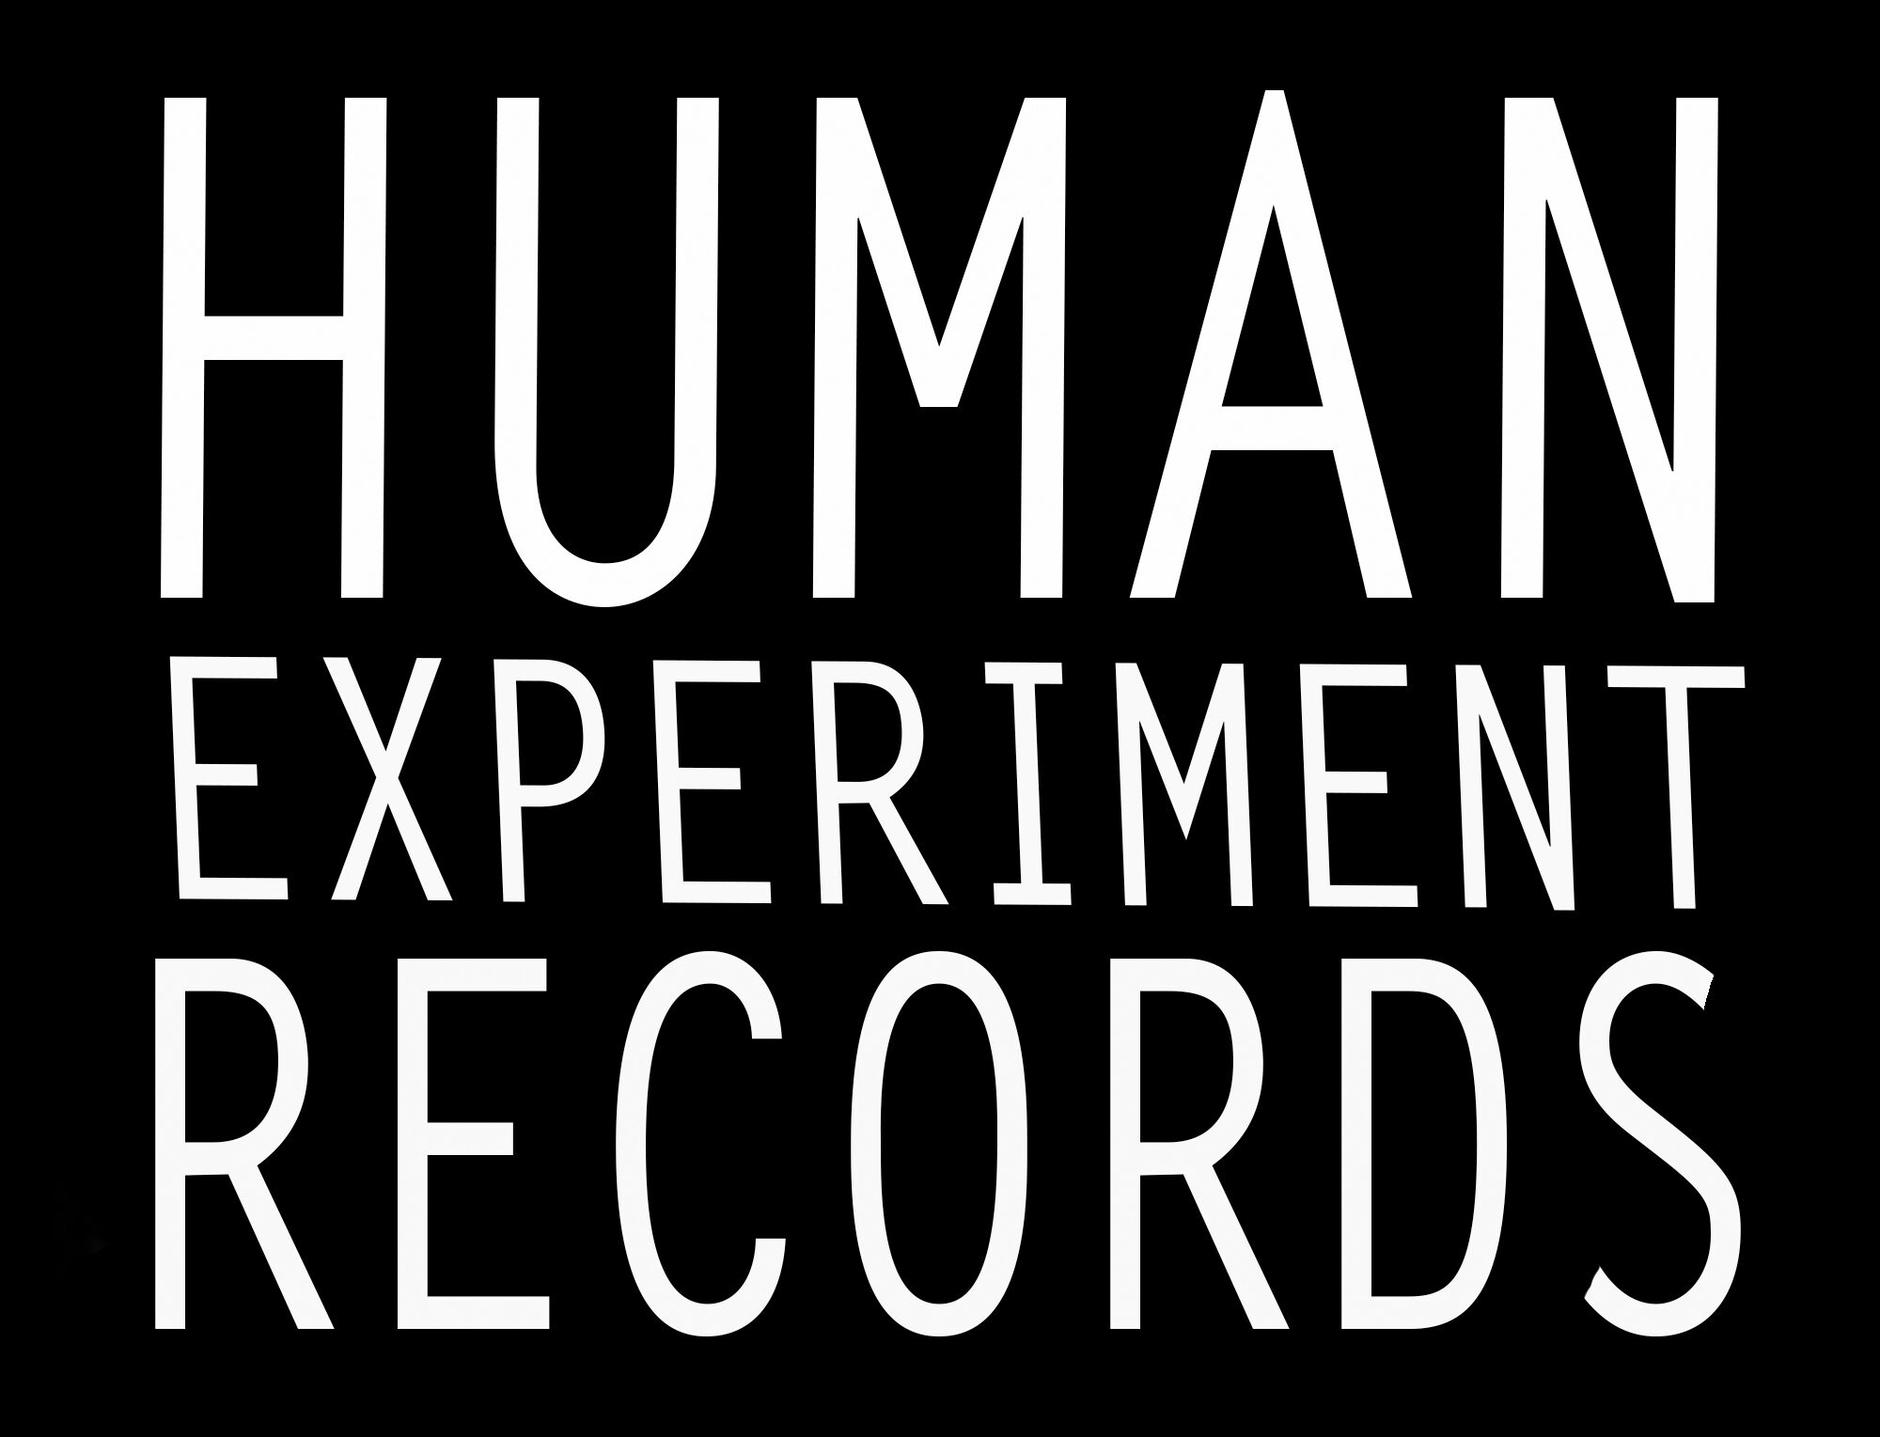 Human Experiment Records